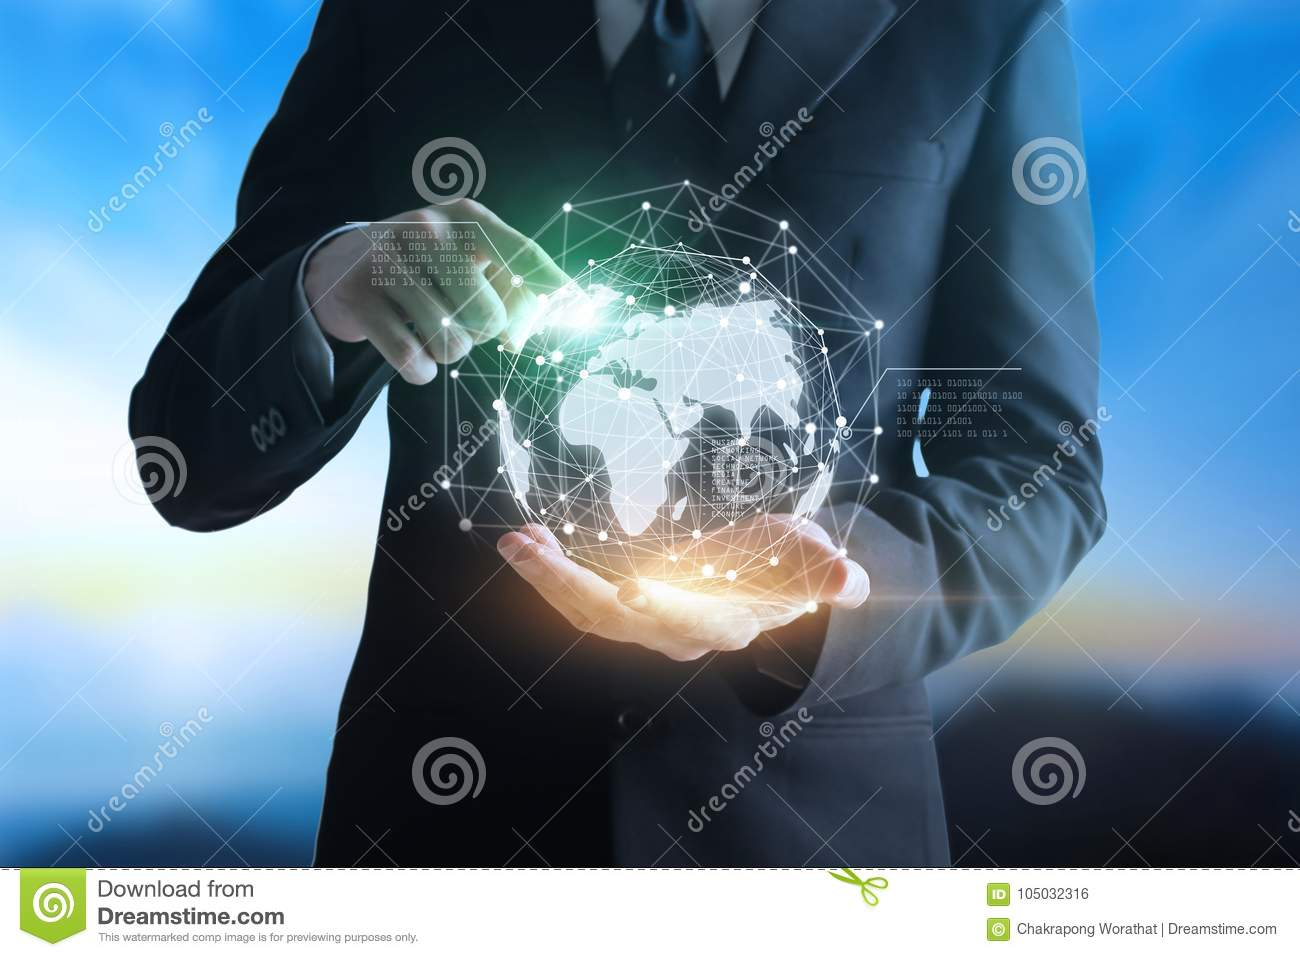 Hands businessman touching Technologies connecting the world.